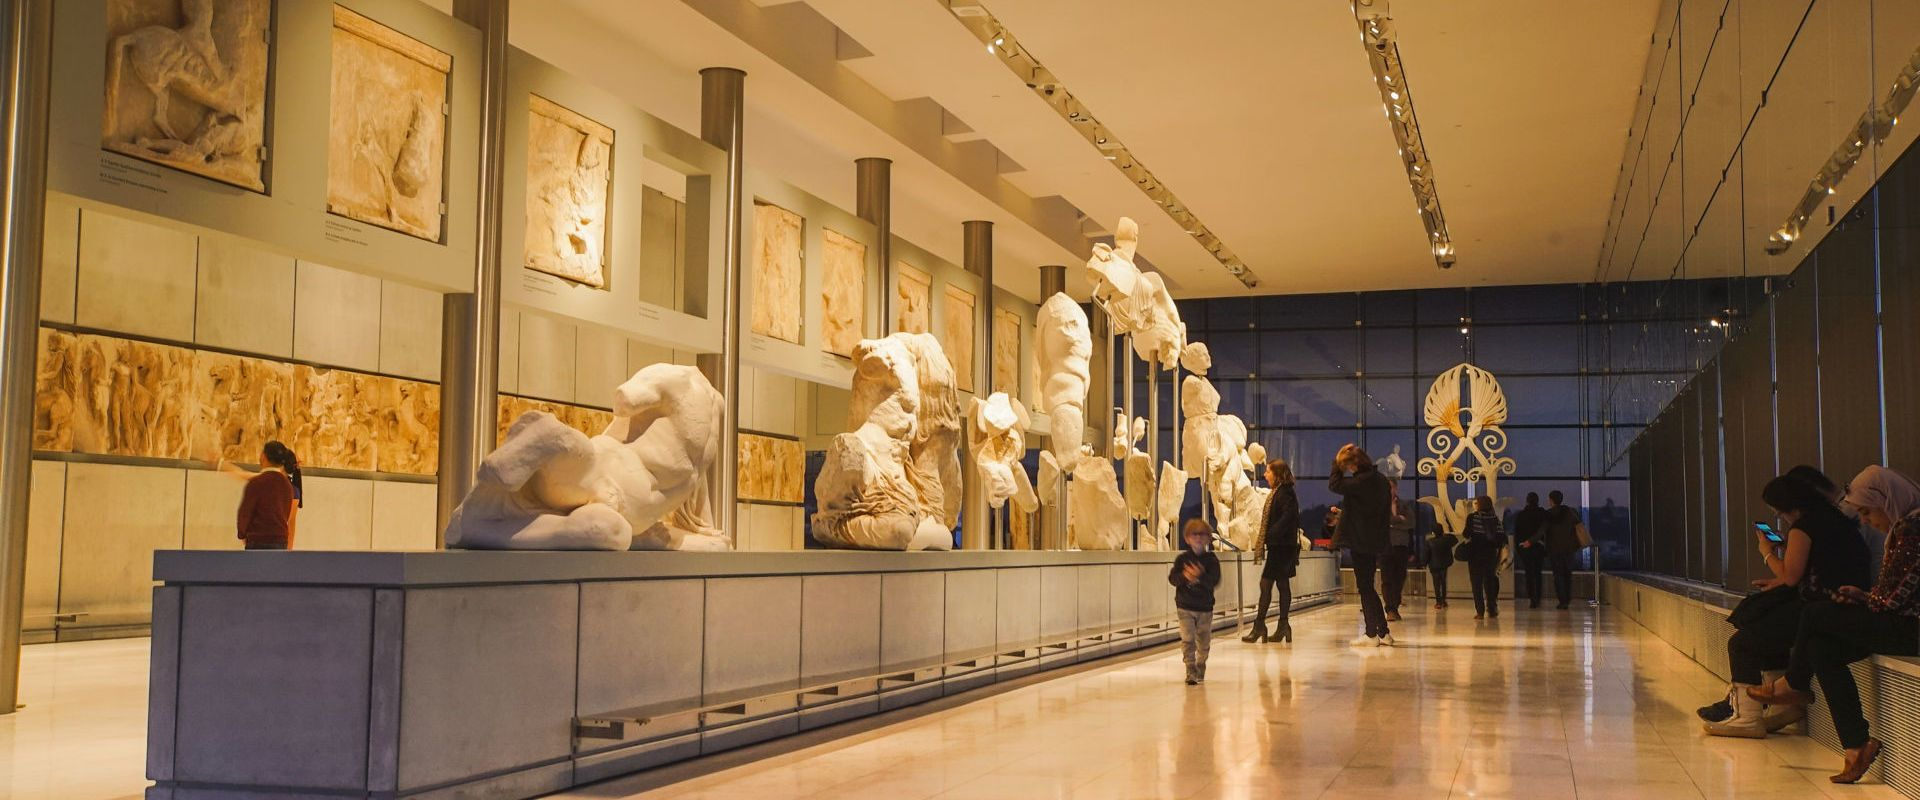 The West Pediment of the Parthenon in the Acropolis Museum